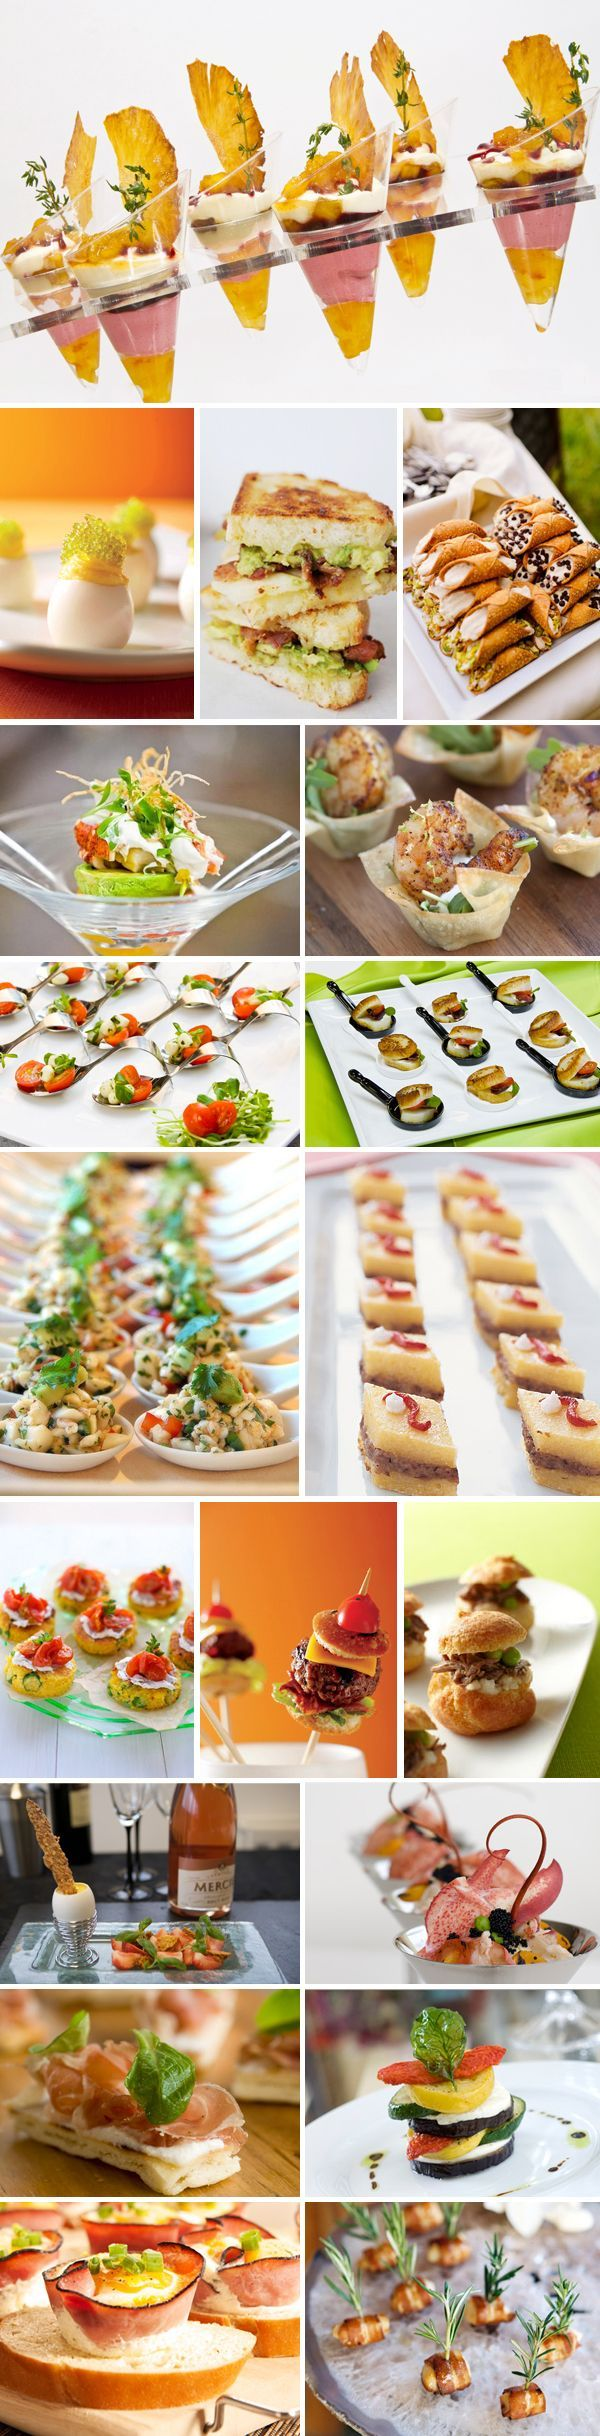 63 creative wedding foods - Unfortunately has no recipes, but has some great looking ideas!